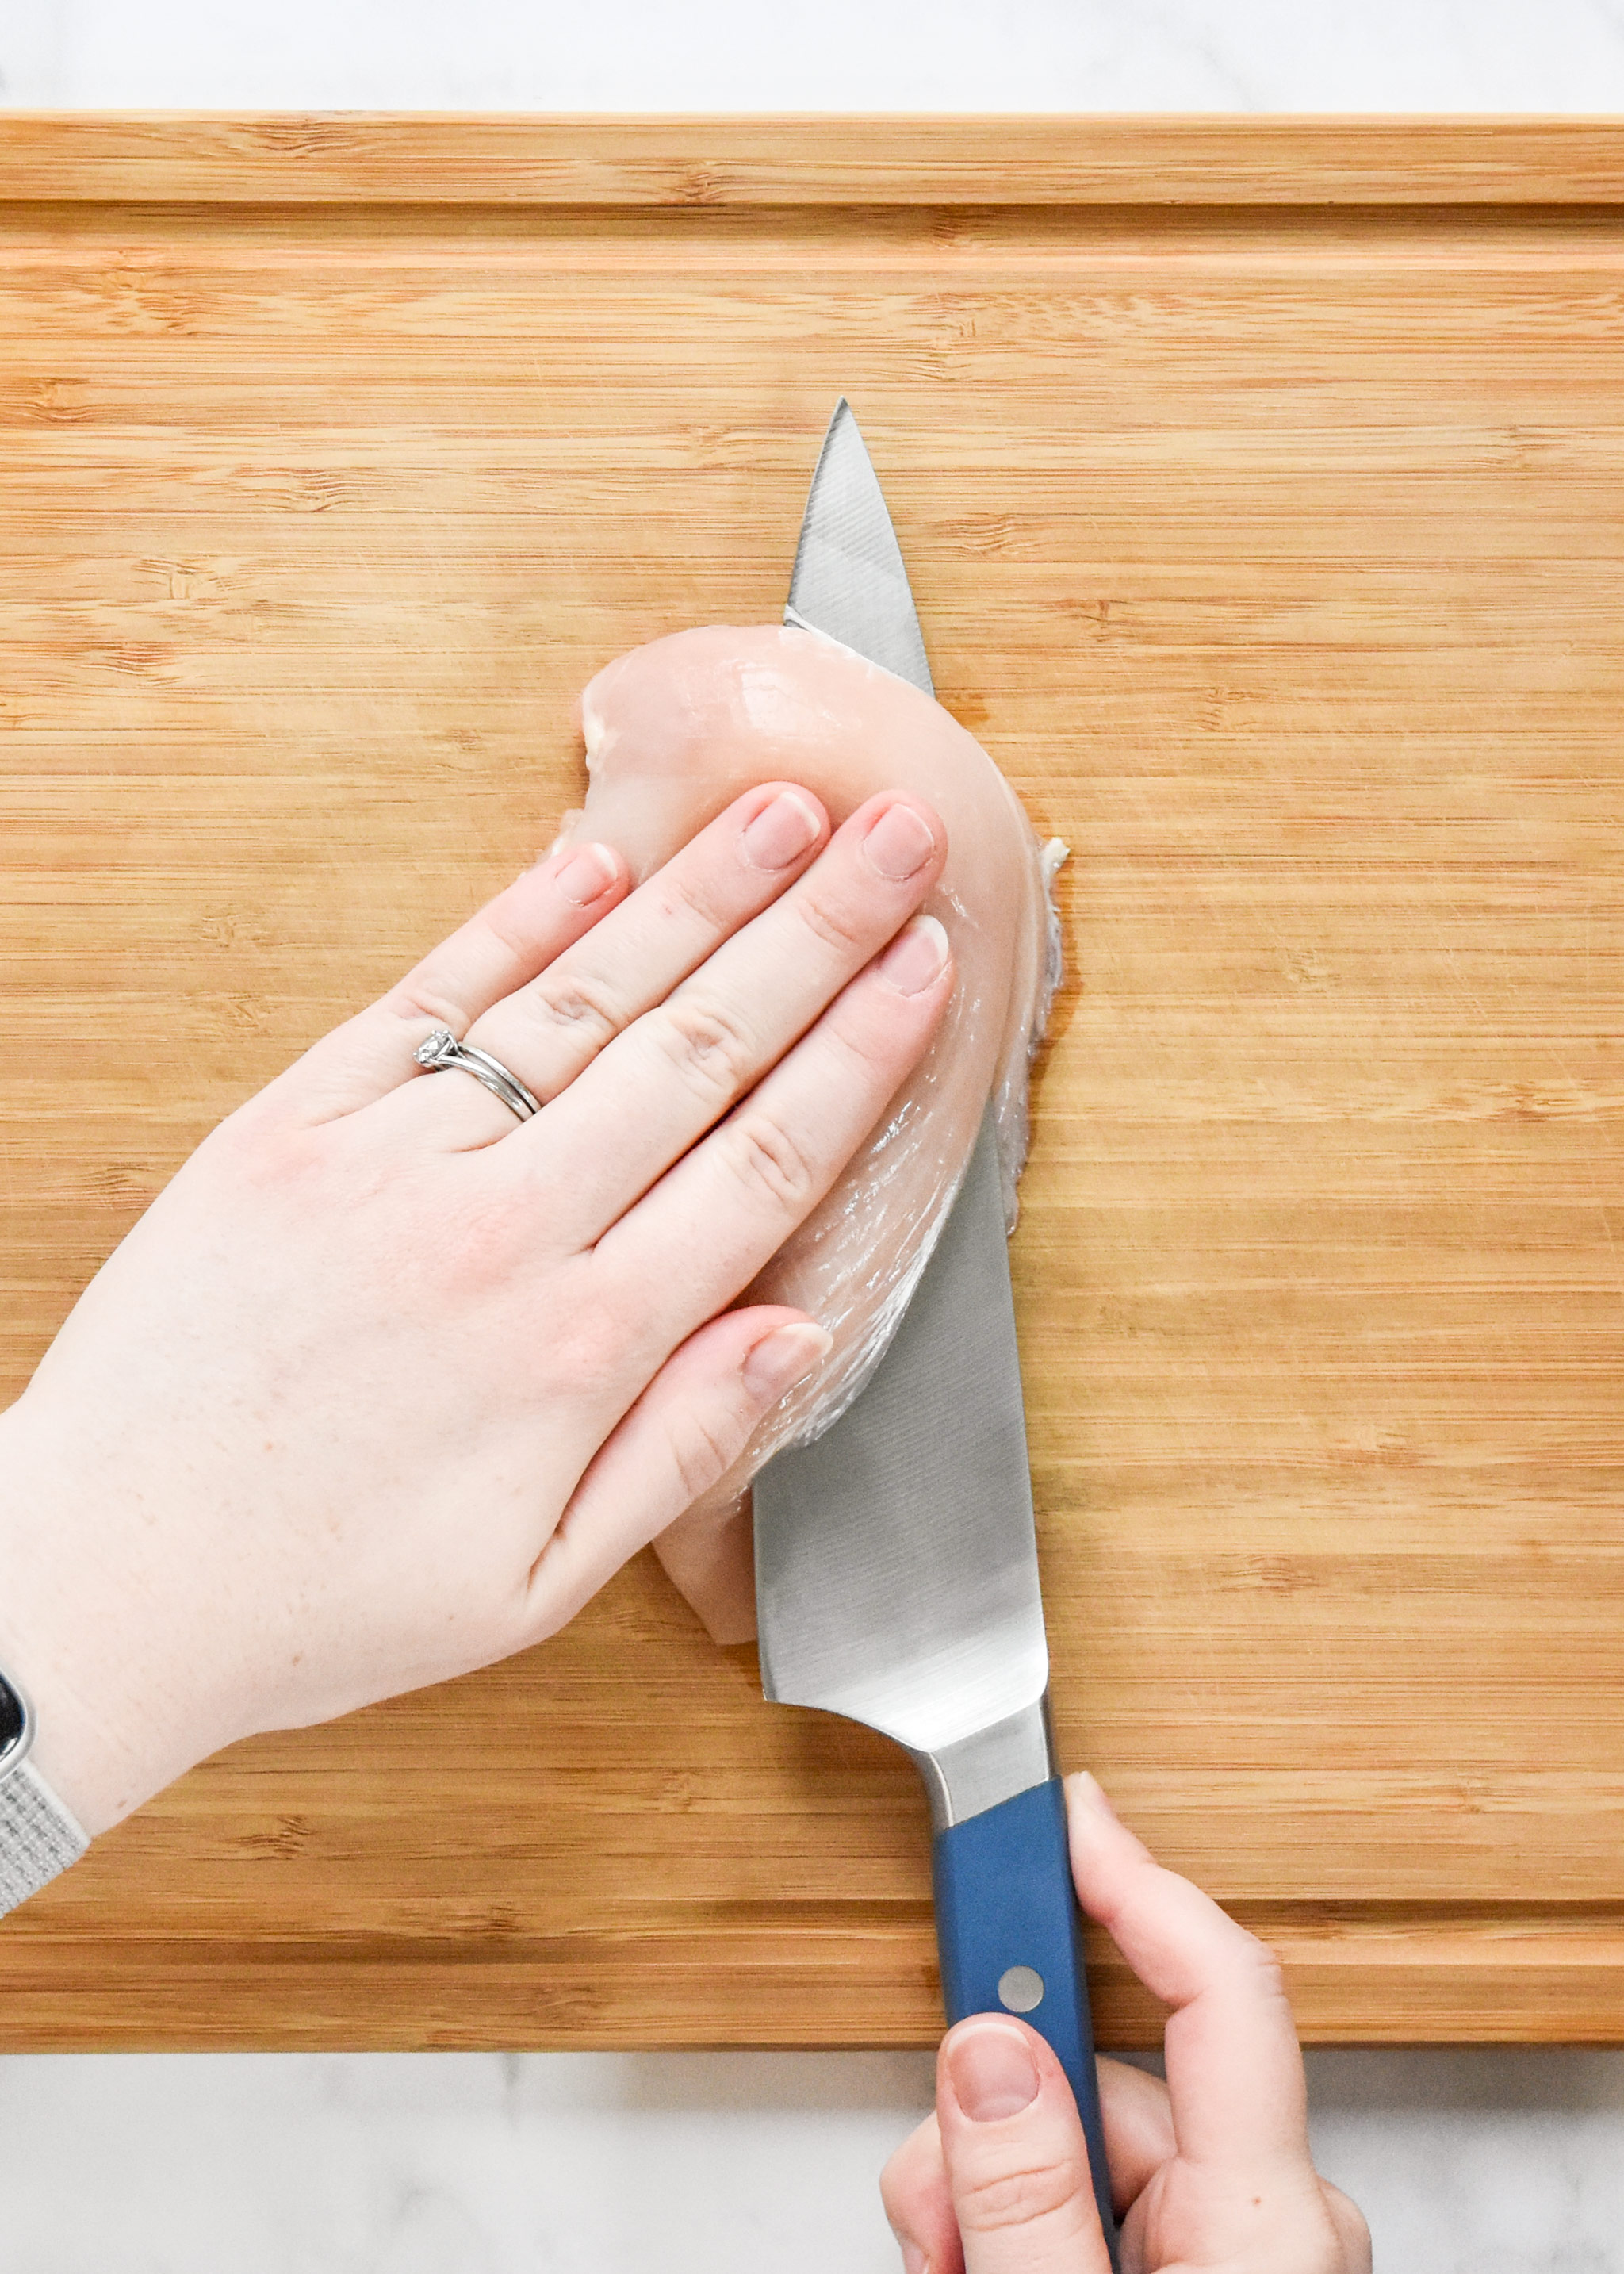 cutting chicken breast in half with a chefs knife.